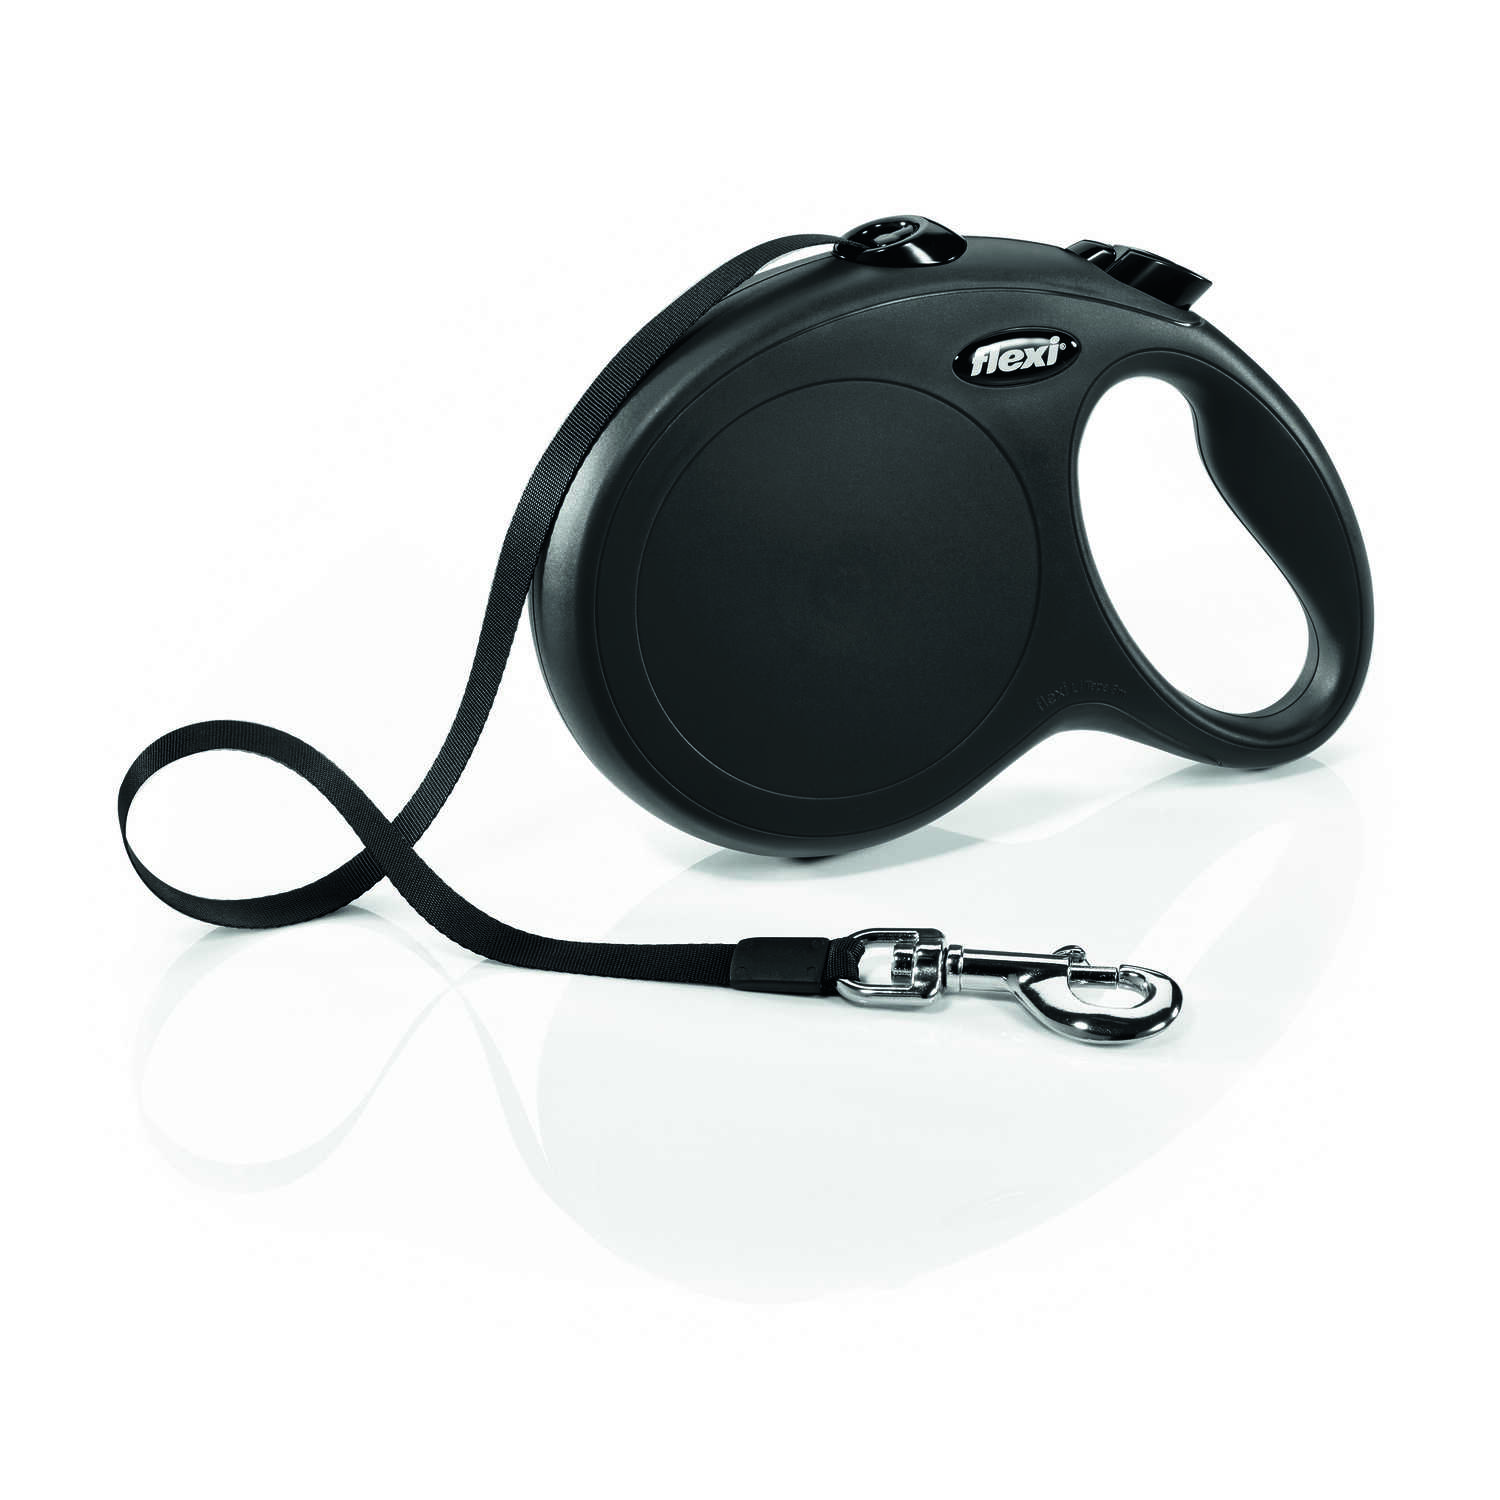 Flexi  Explore  Black  Nylon  Retractable Leash  Large